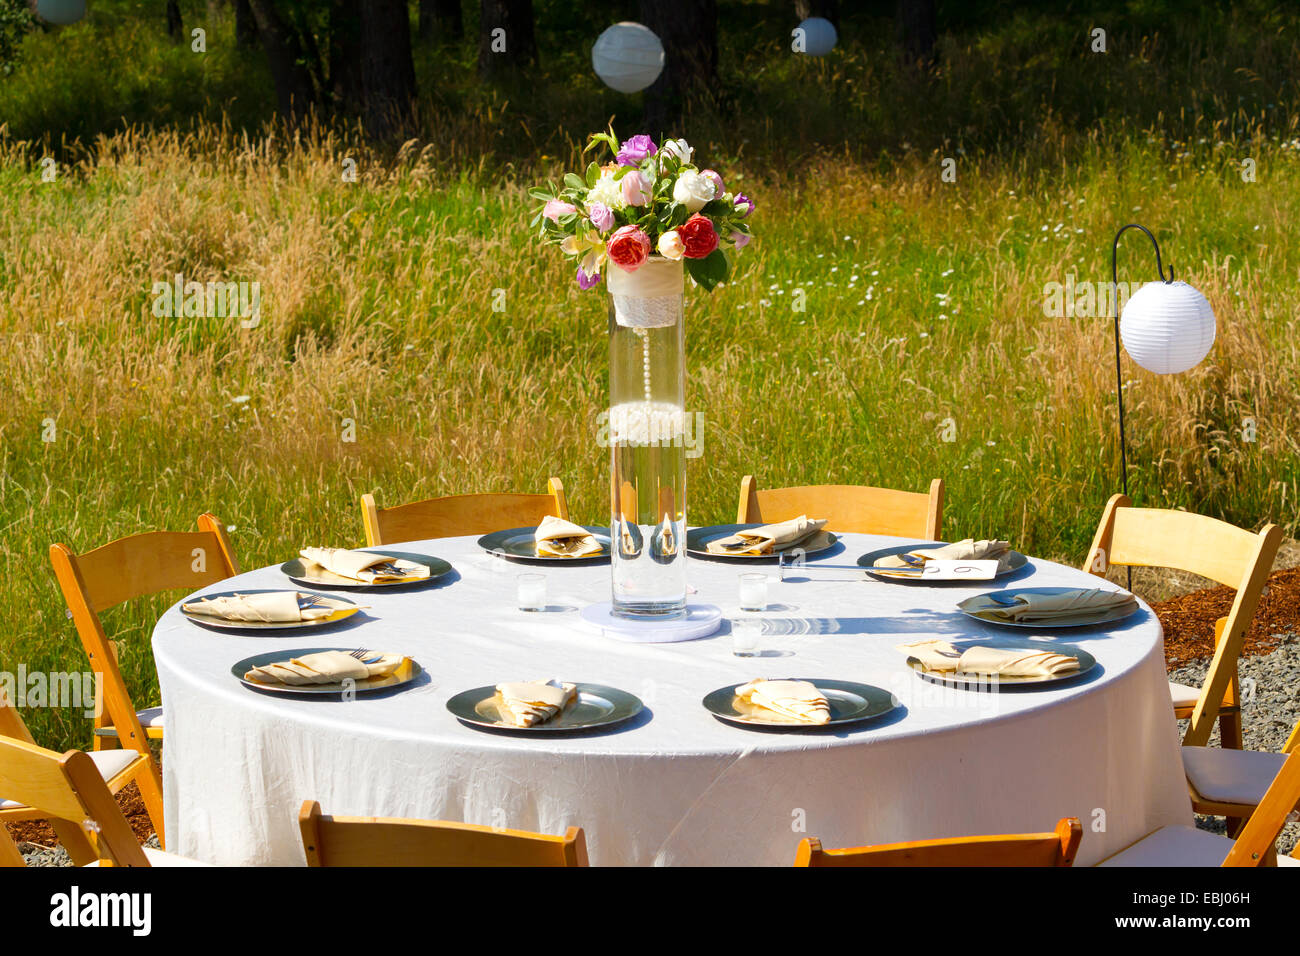 Dining Table At A Wedding Reception Outdoors With Plates And Silverware Ready For Eating